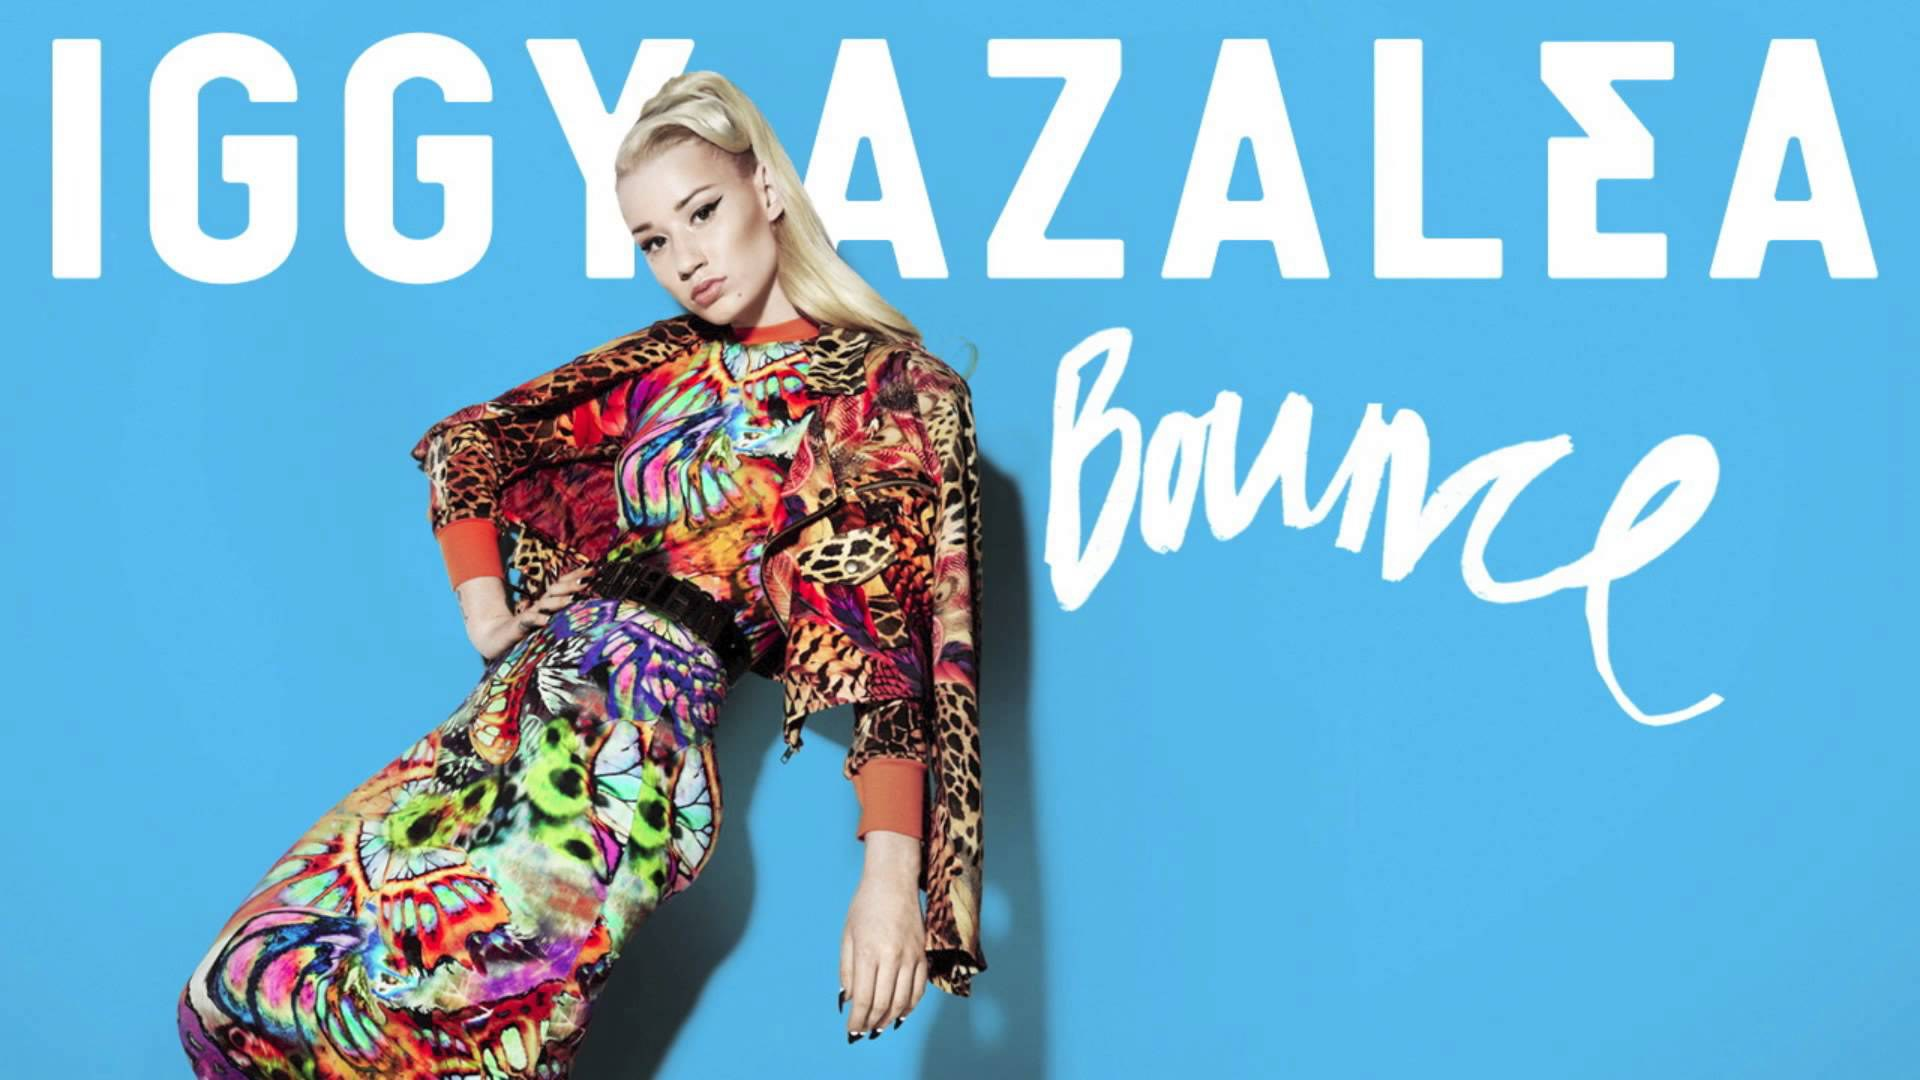 iggy azalea hd wallpapers